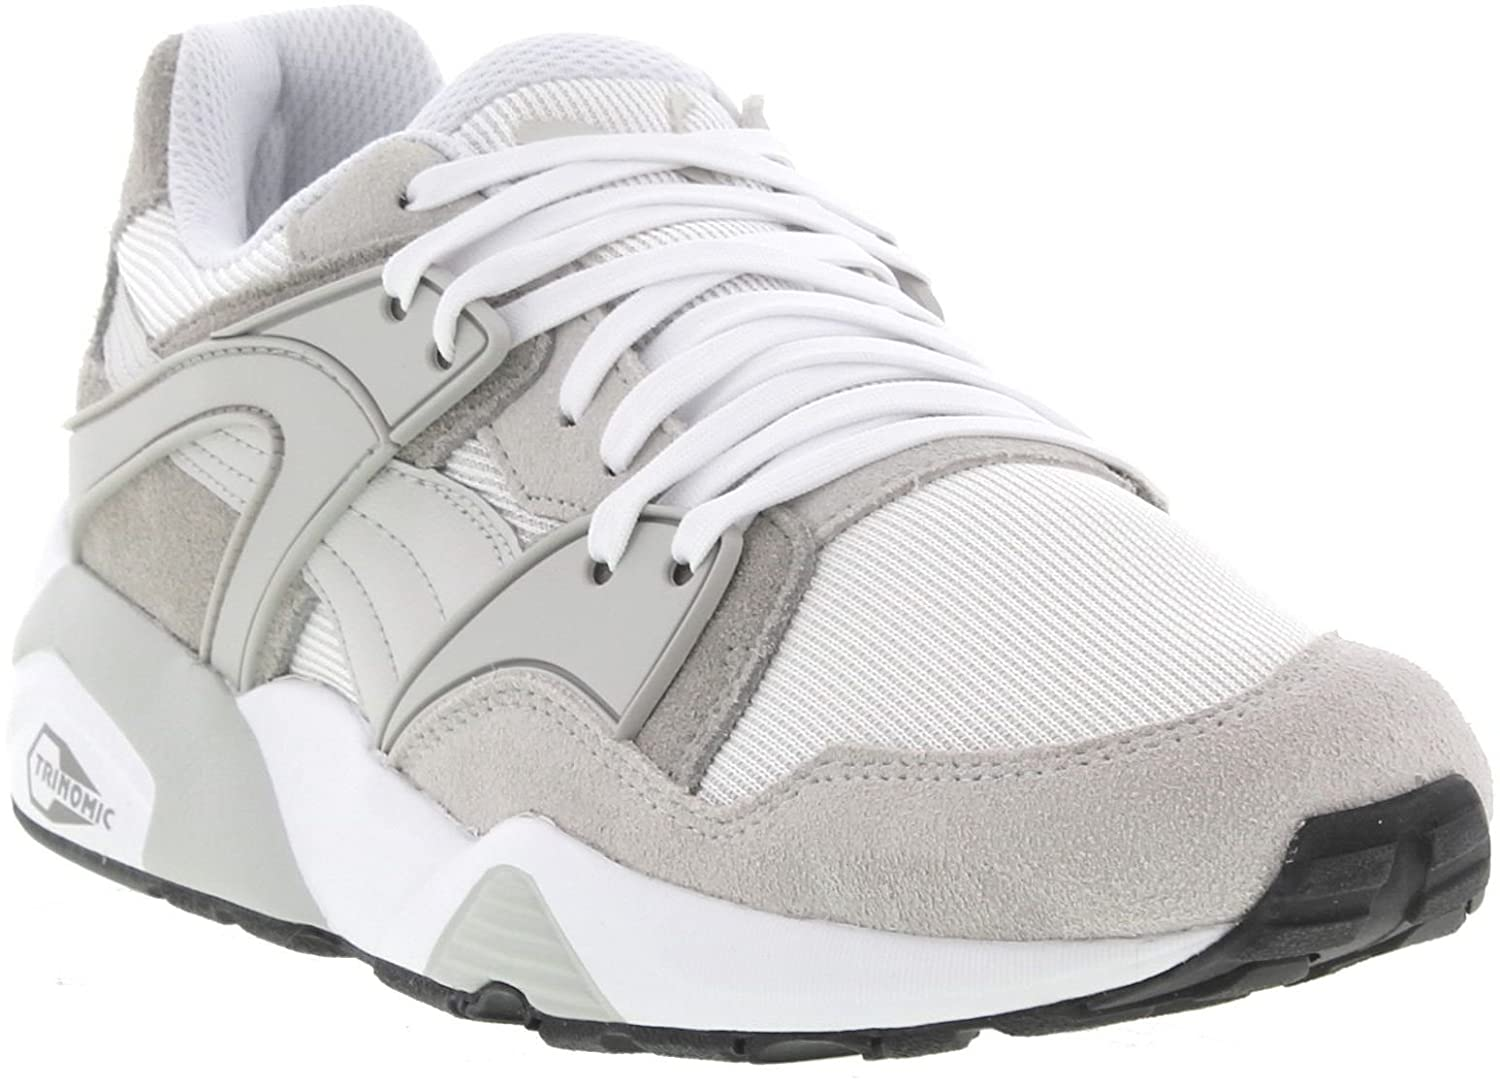 Unisex Adults/' Low-Top Sneakers PUMA Blaze Classic